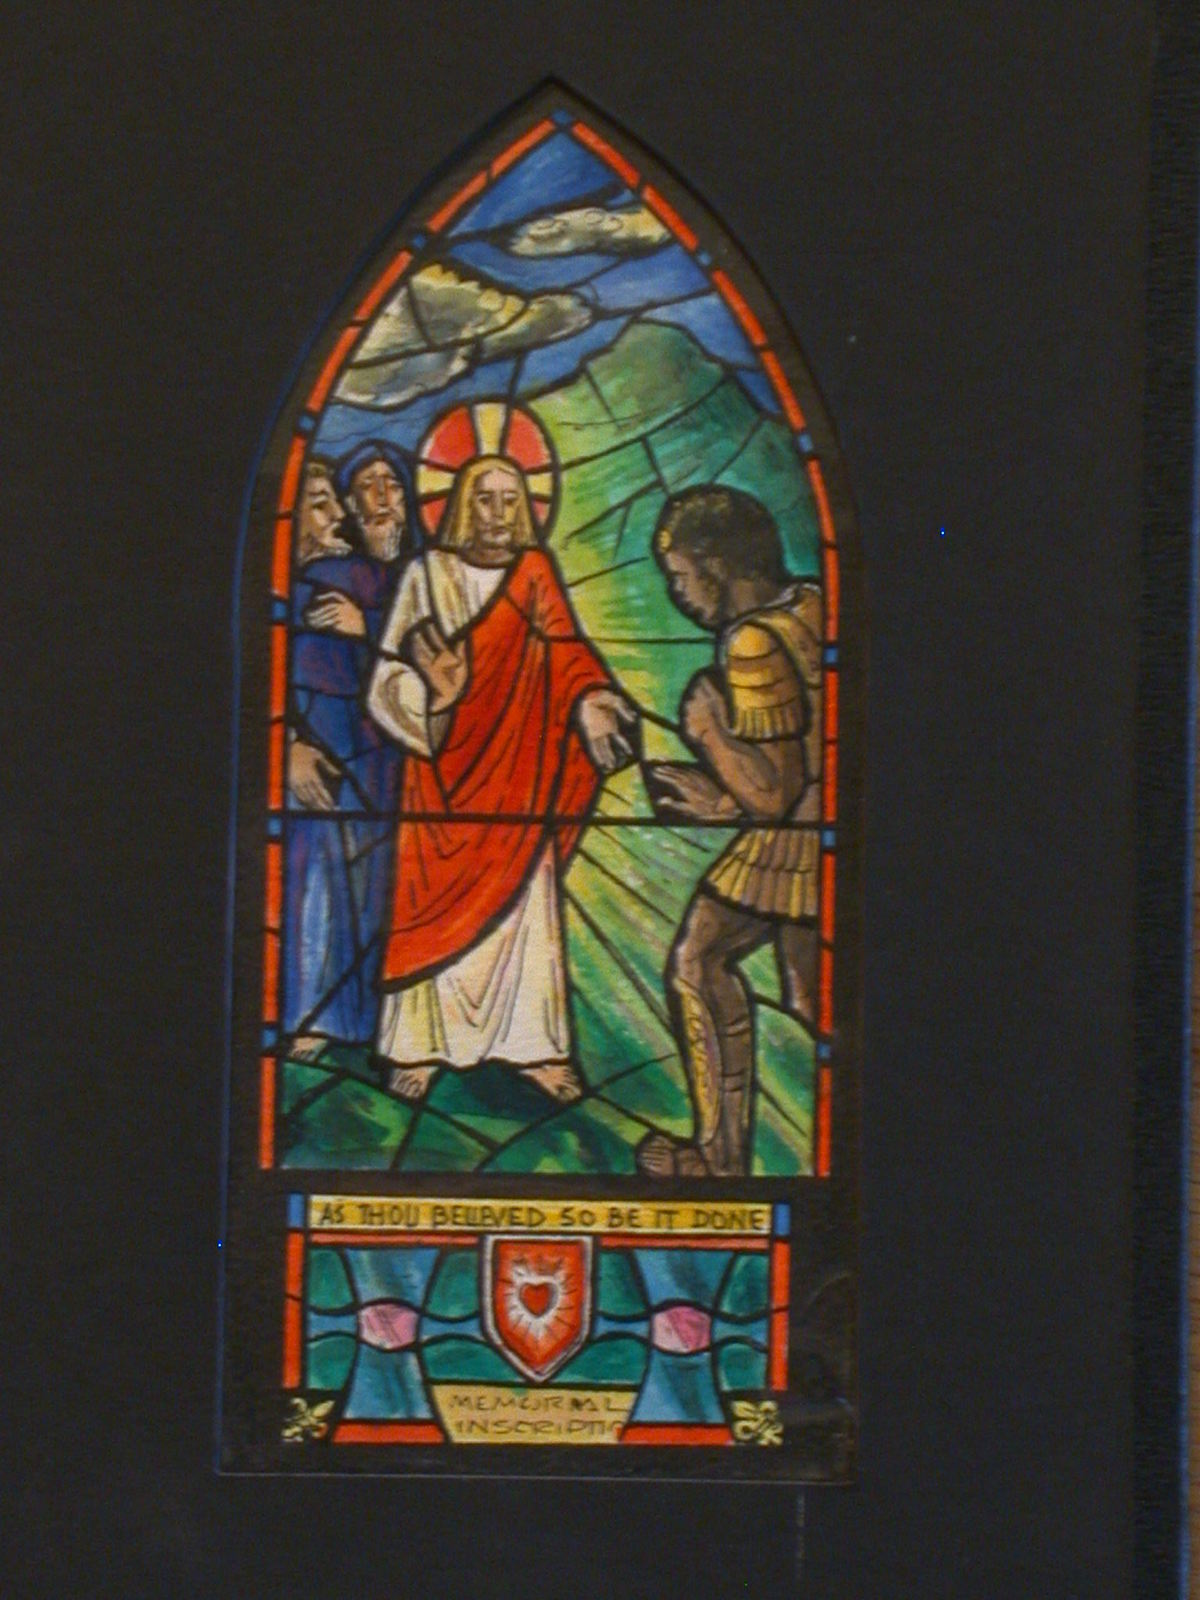 """[Design drawing for stained glass memorial window with text """"As Thou Believed So Be It Done"""" showing a blond Christ healing African centurion]"""